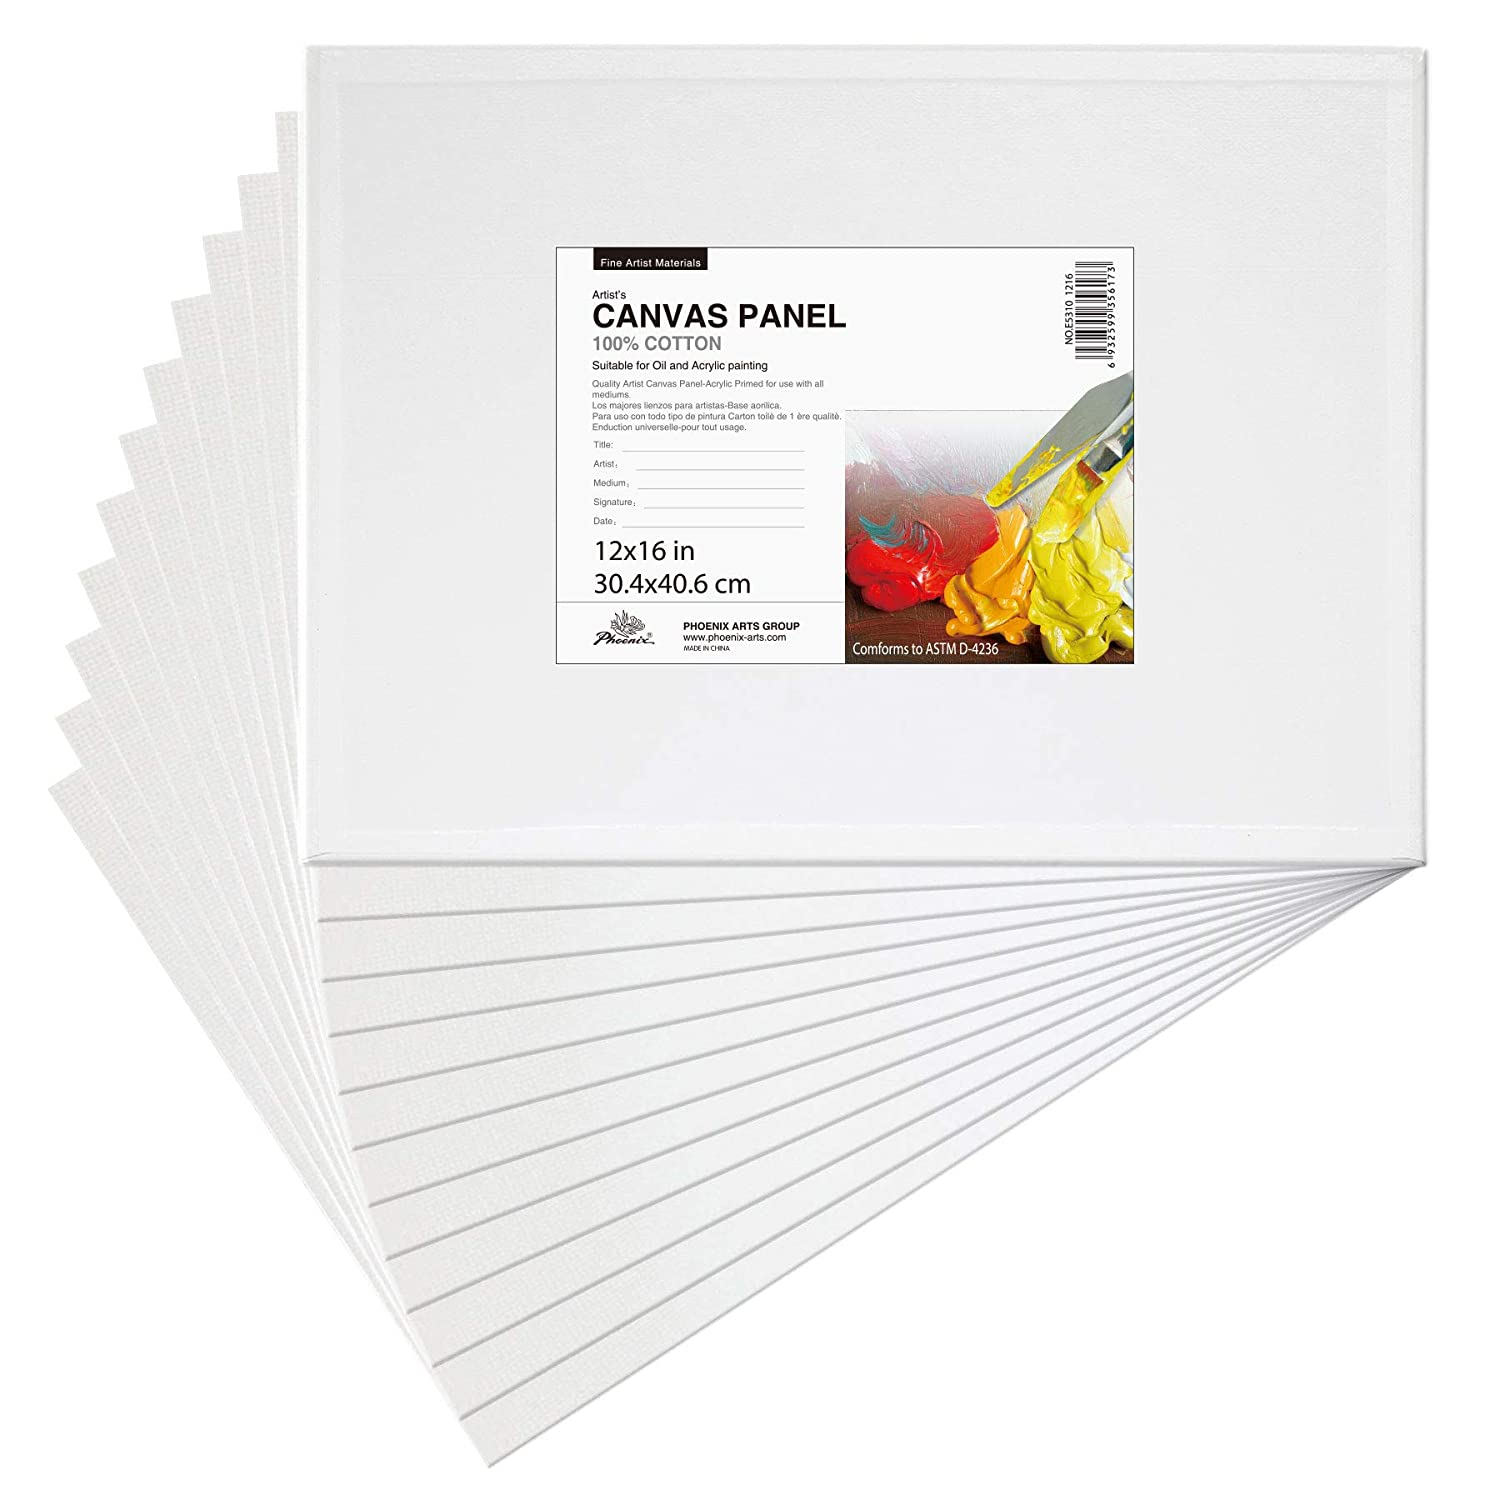 Phoenix 12x16 inch Painting Canvas Panel Boards 12 Set of Super Value Pack 1/7 inch Deep for Professional Artist, Student & Kid